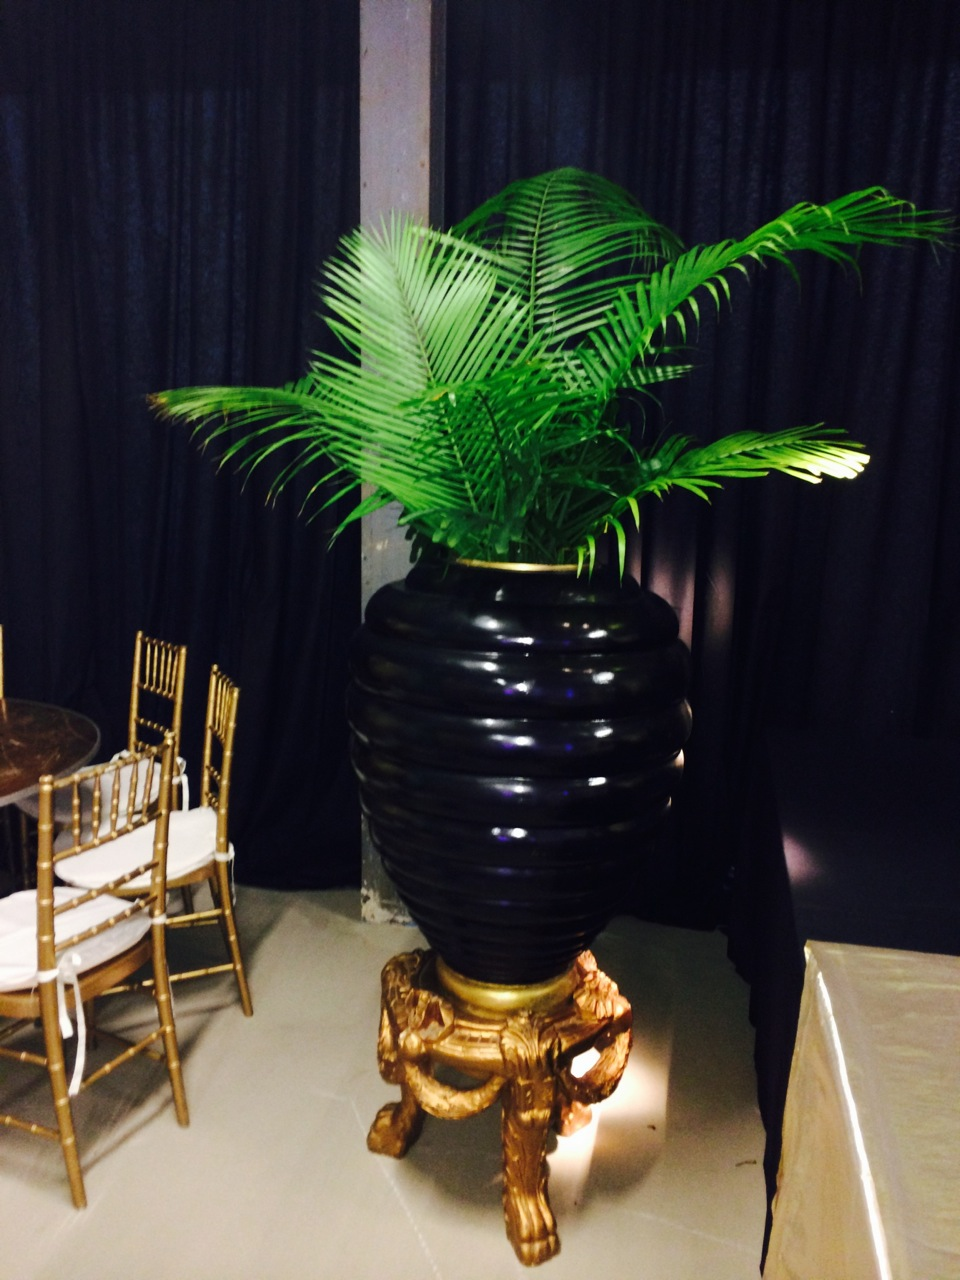 Our art deco beehive urns with gold lion's paw pedestals, paired with fresh majesty palm fronds